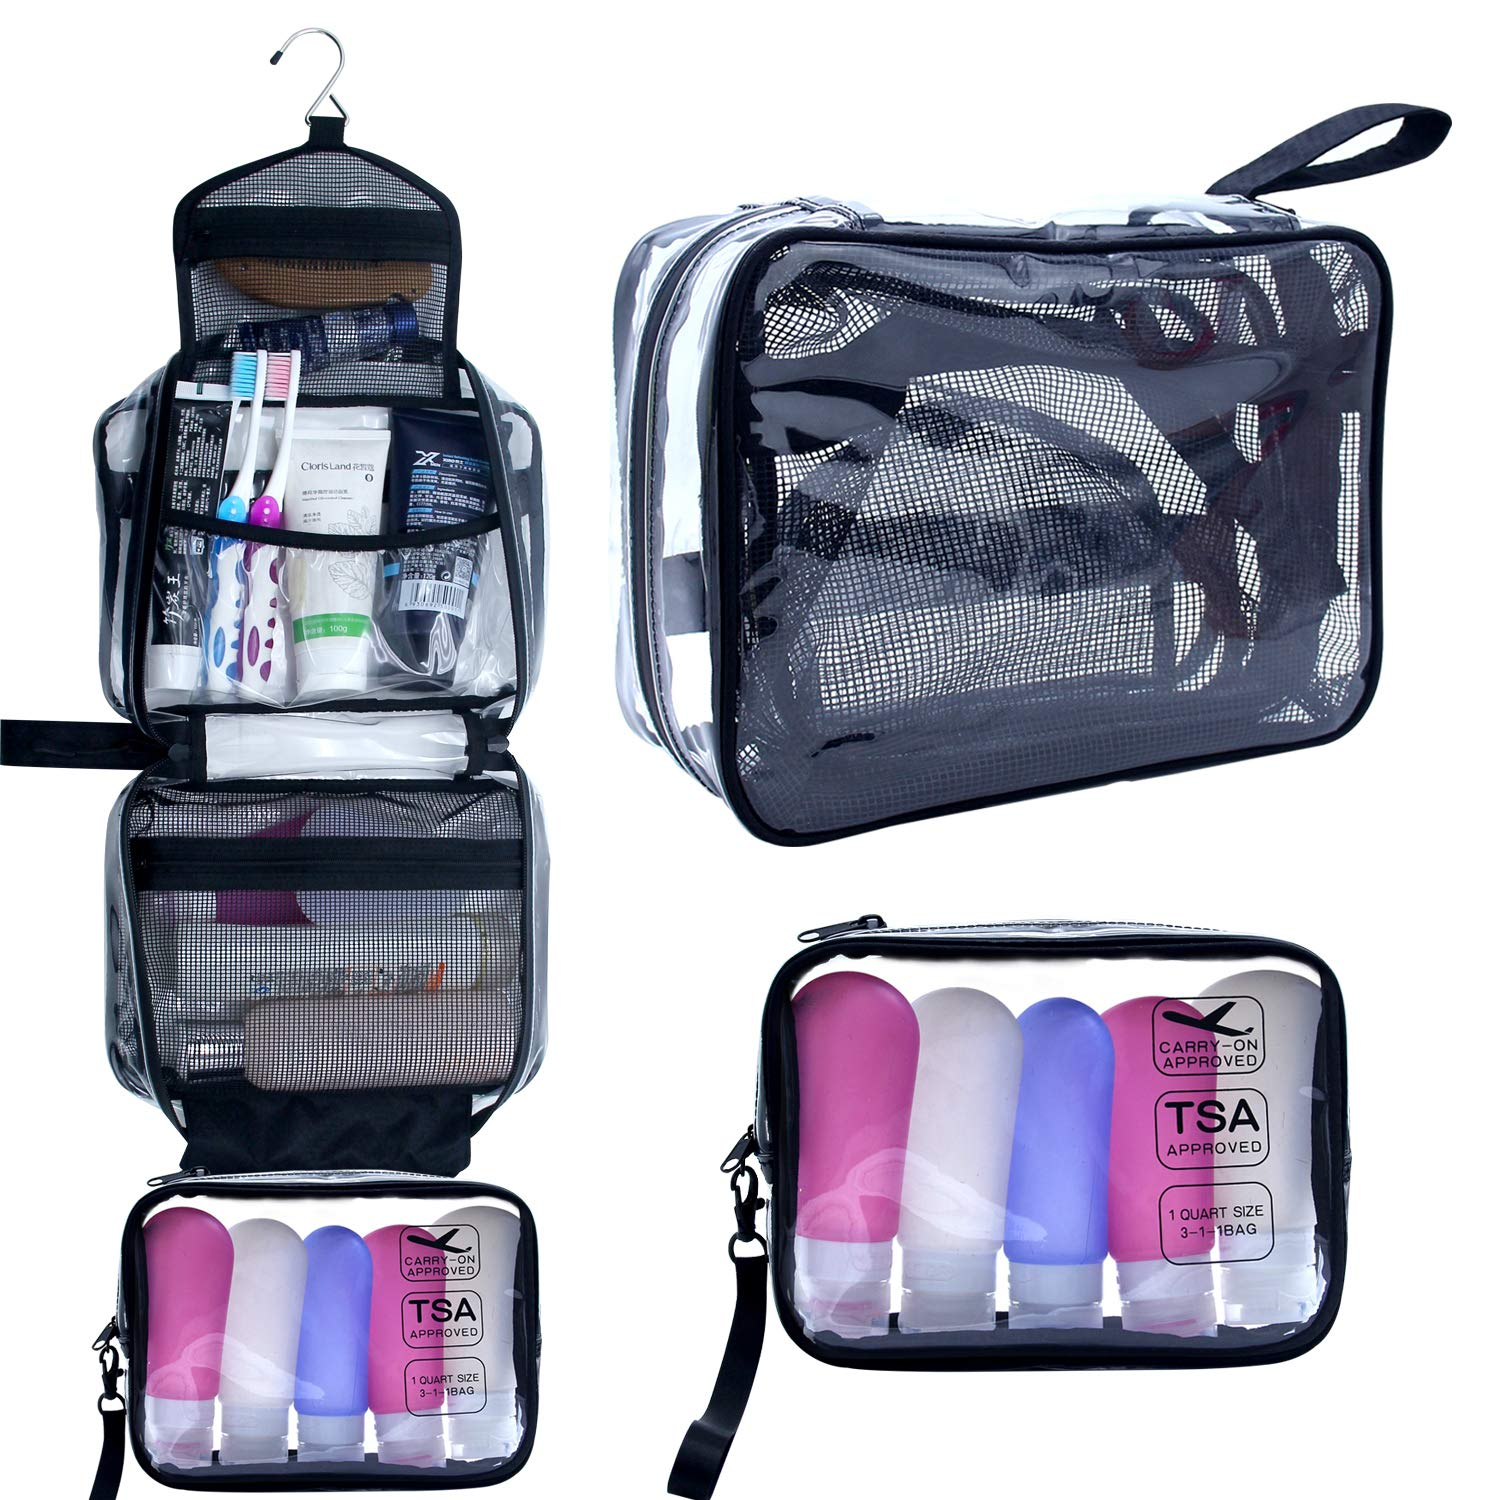 ea181a3d3ad Hanging Toiletry Bag, Clear Travel Toiletry Bag with Detachable TSA  Approved Small Clear Bag Airline 3-1-1 Carry On Compliant Bag Makeup Bag  for Men and ...